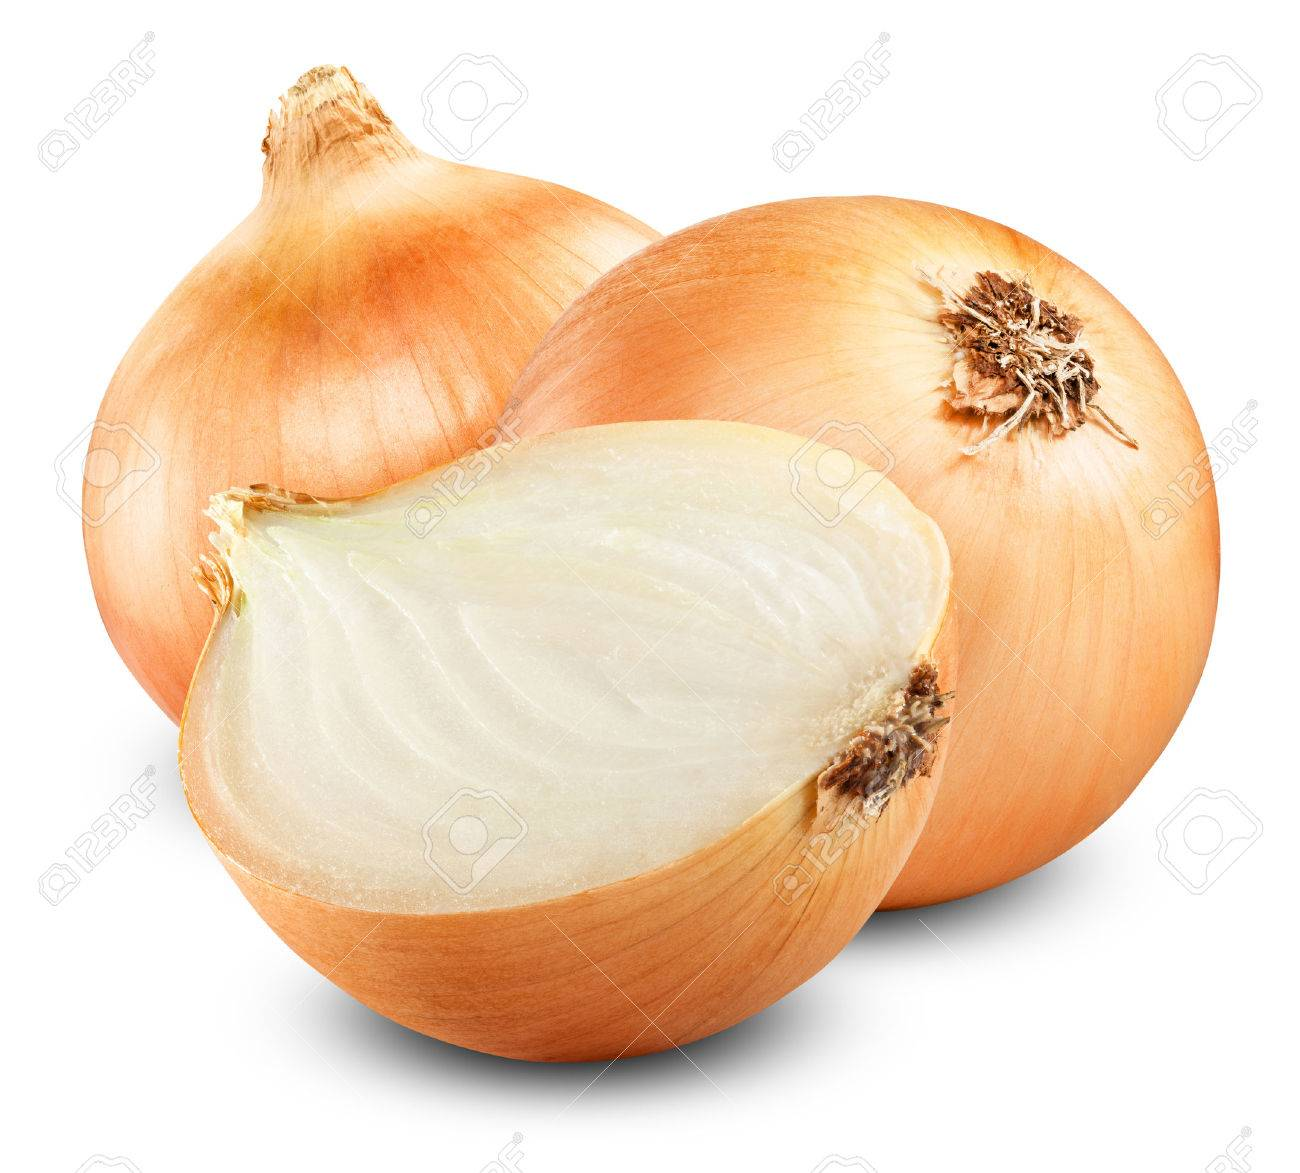 Fresh onion bulbs isolated on white background - 31590973